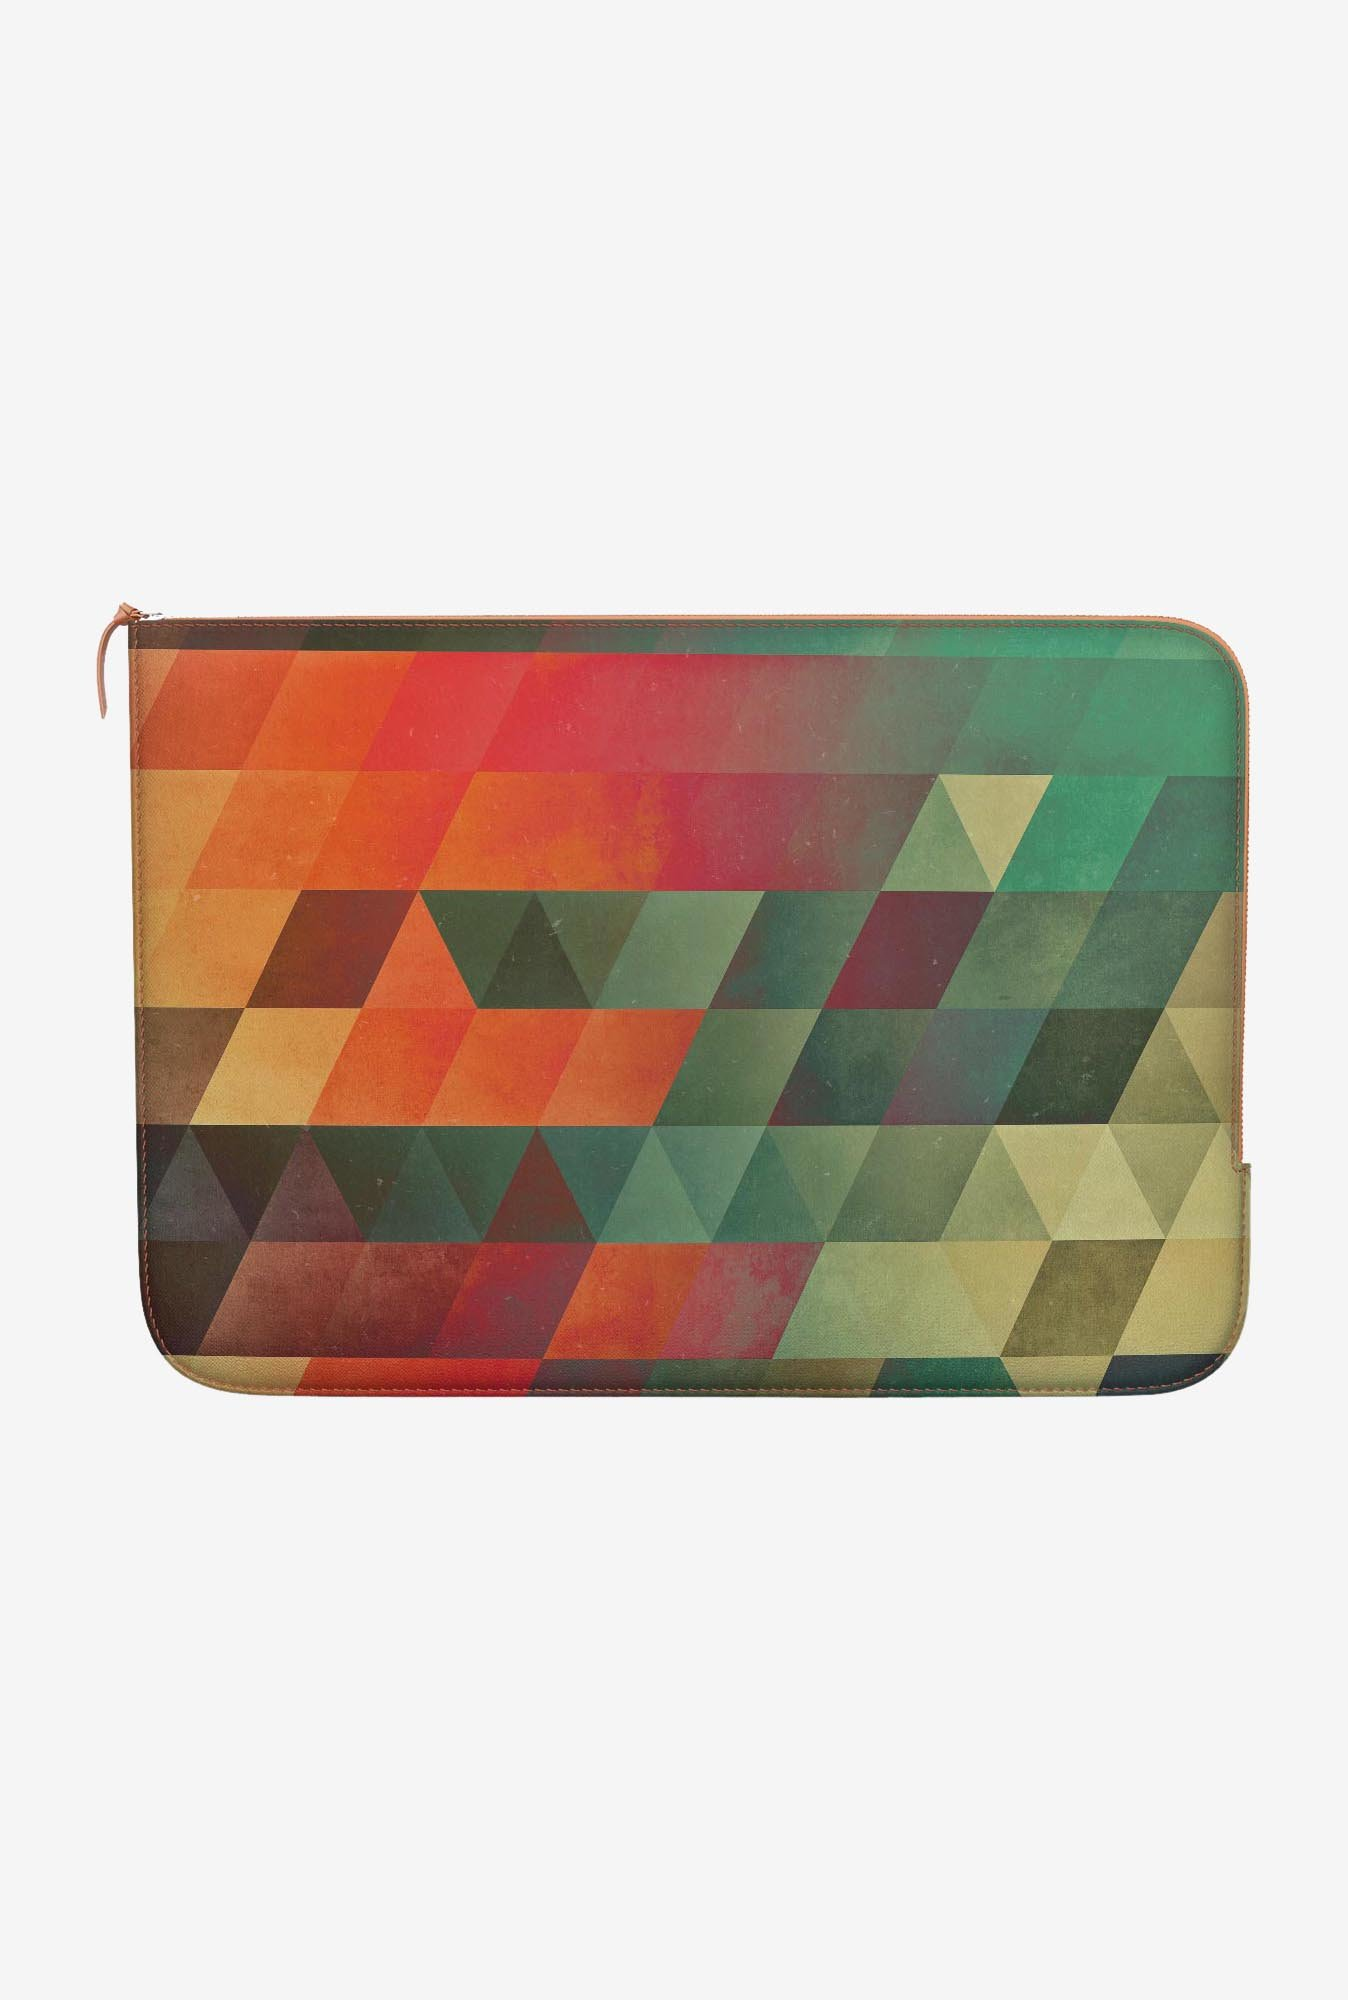 DailyObjects Yrrynngg Zkyy MacBook Pro 15 Zippered Sleeve